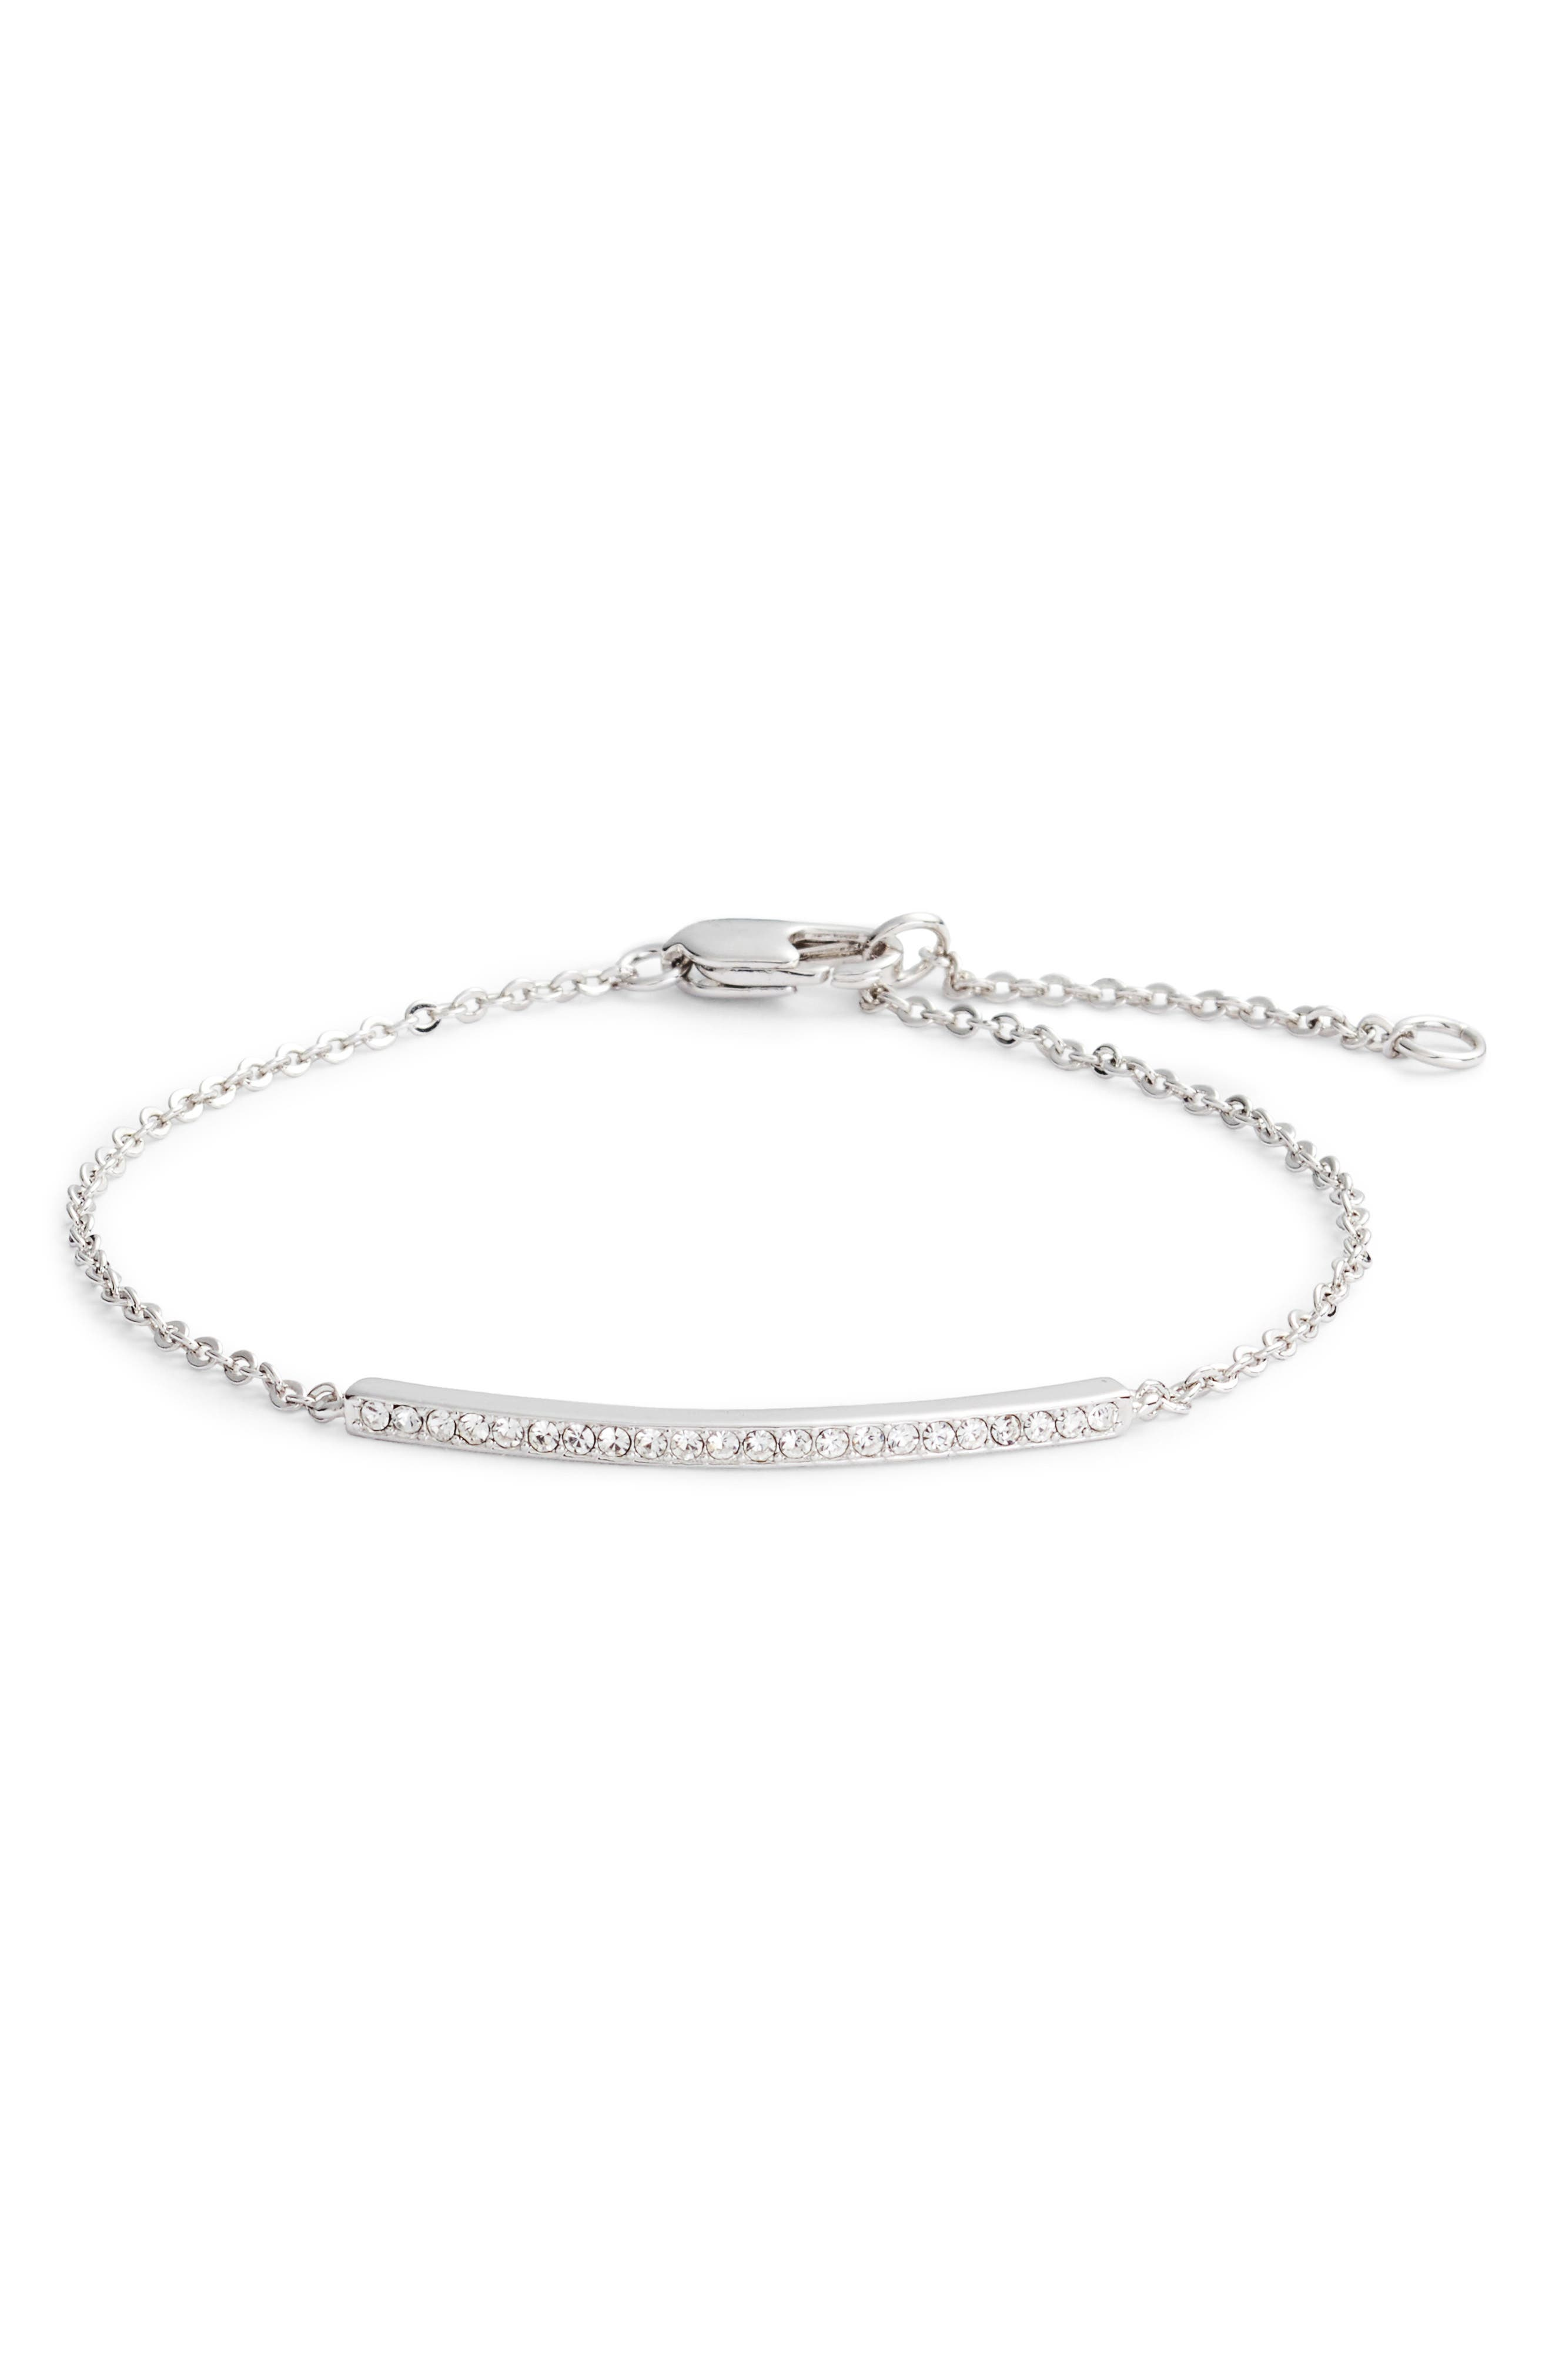 A linear setting is alight with sparkle on a simply gleaming bracelet. Style Name: Nordstrom Pave Bar Bracelet. Style Number: 5571012. Available in stores.